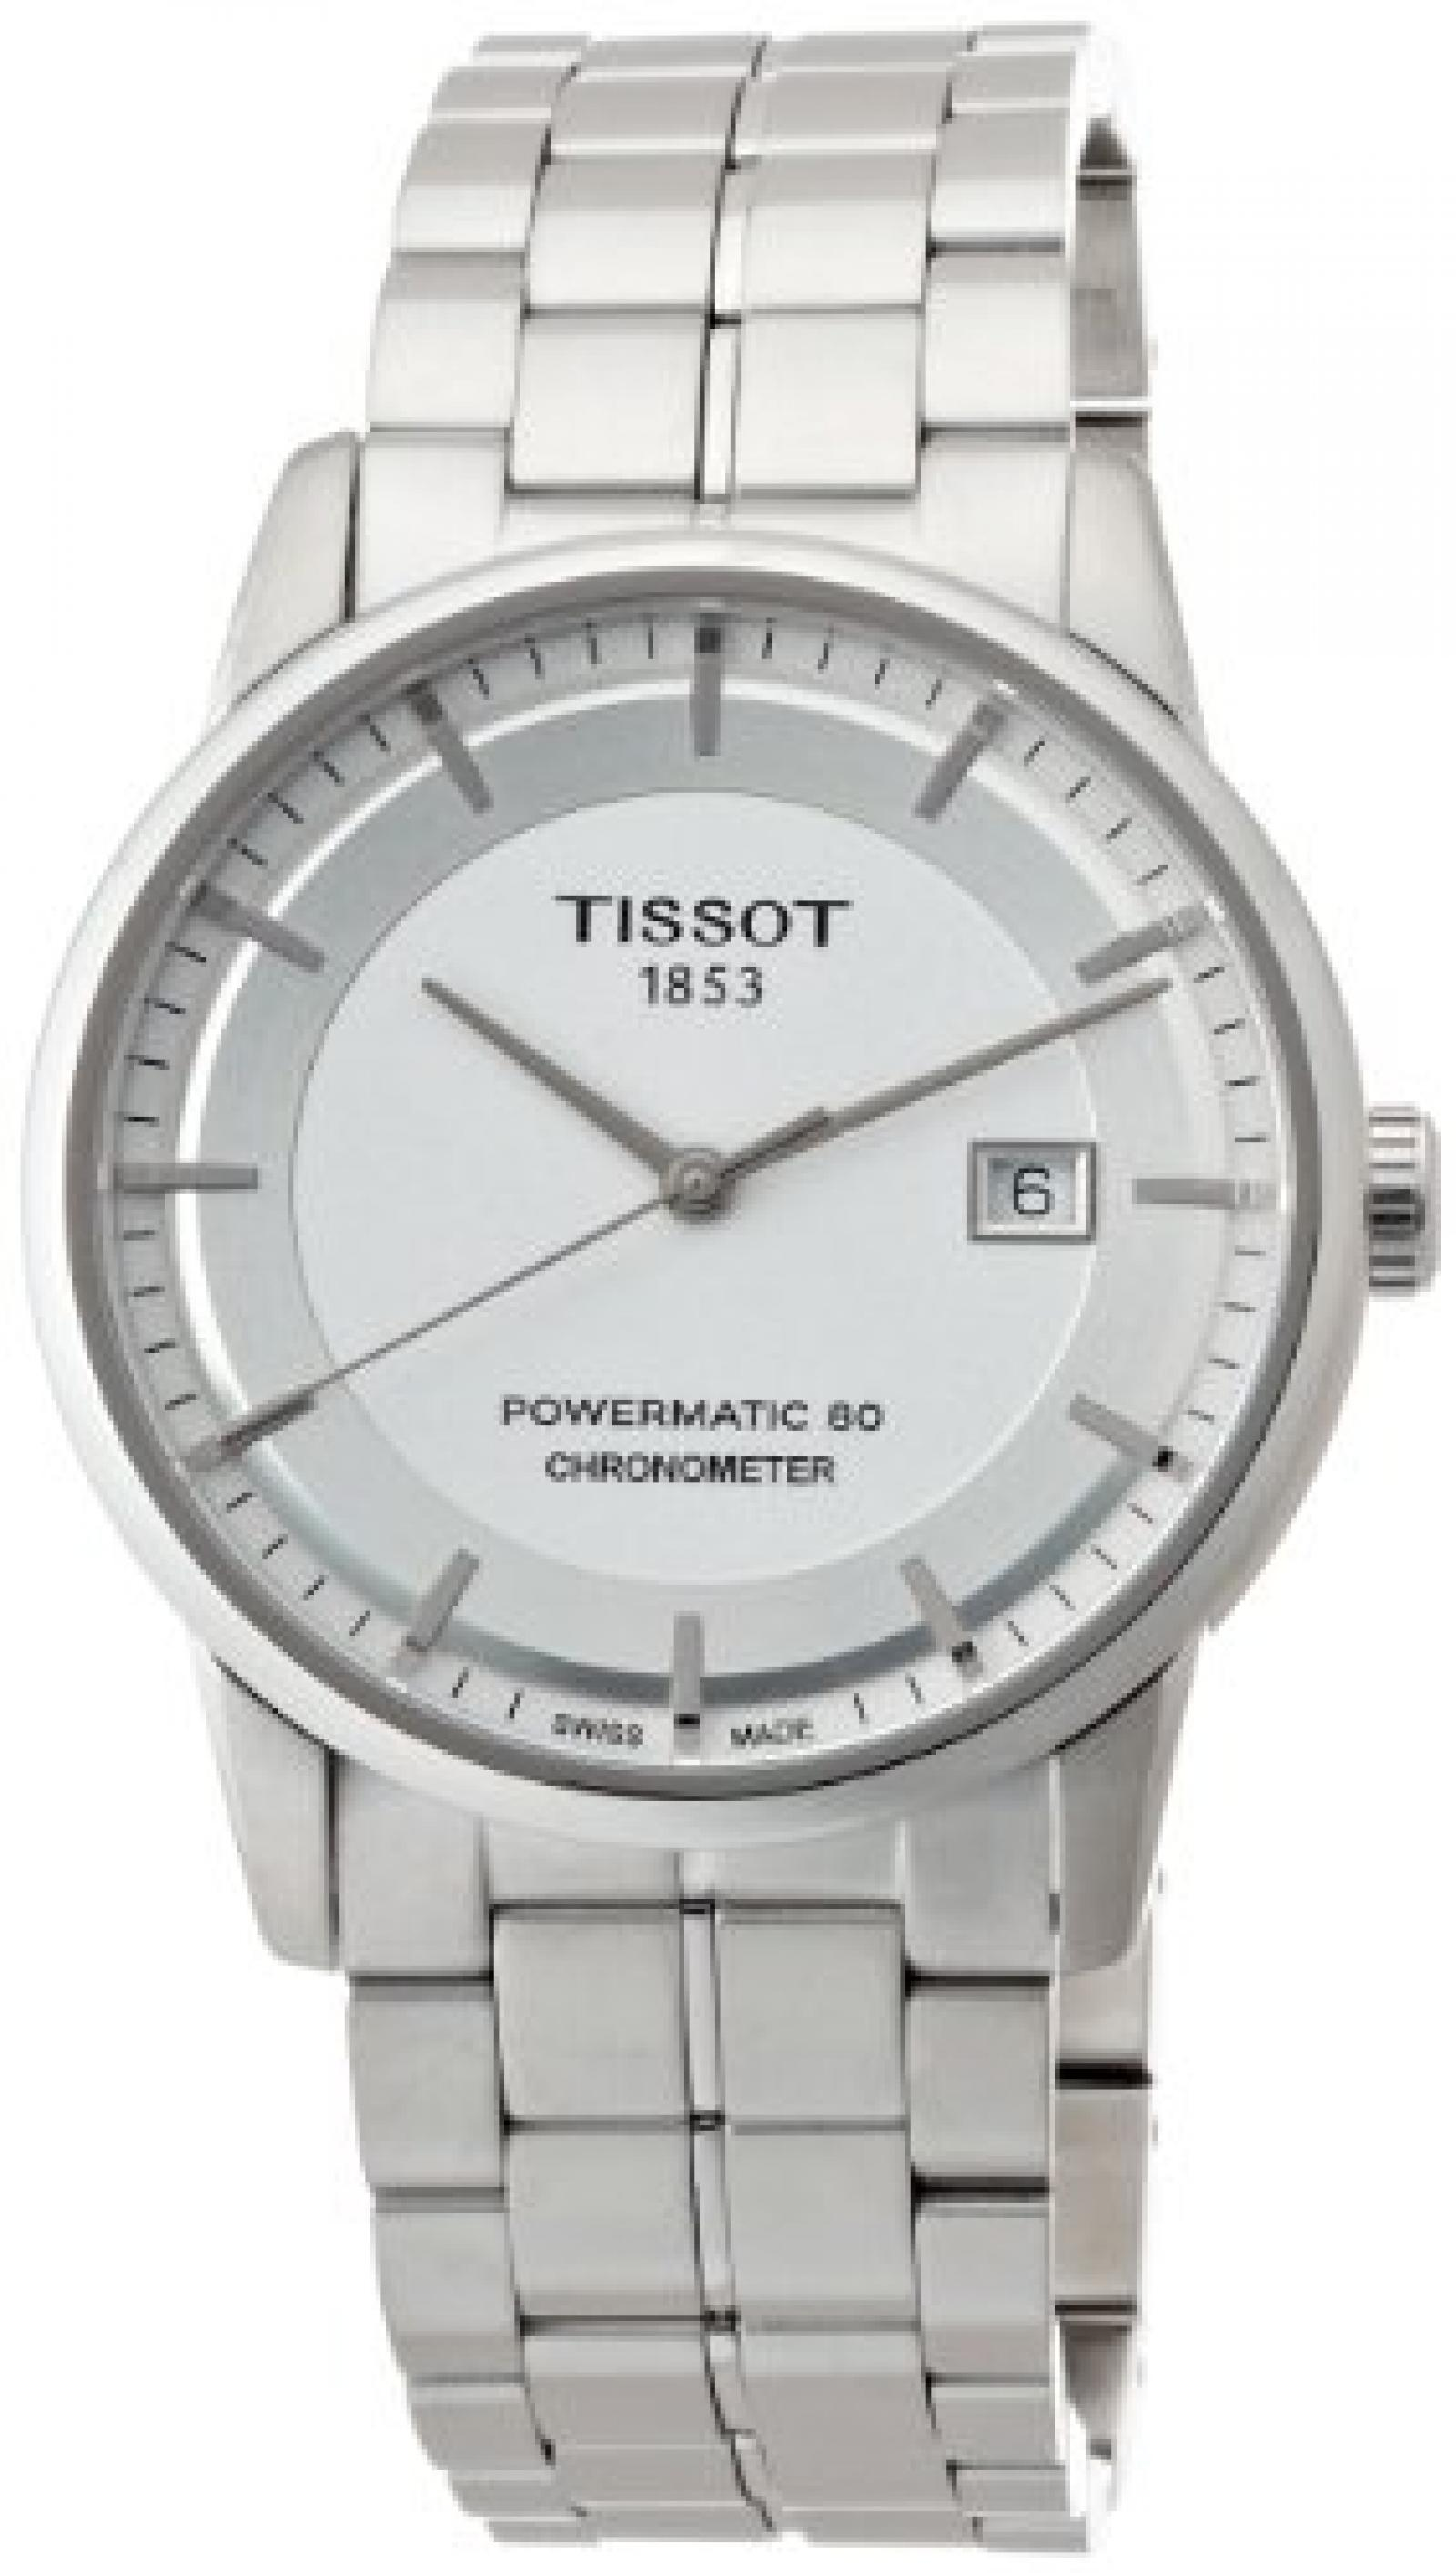 Tissot T-Classic Luxury Automatic COSC Chronometer T086.408.11.031.00